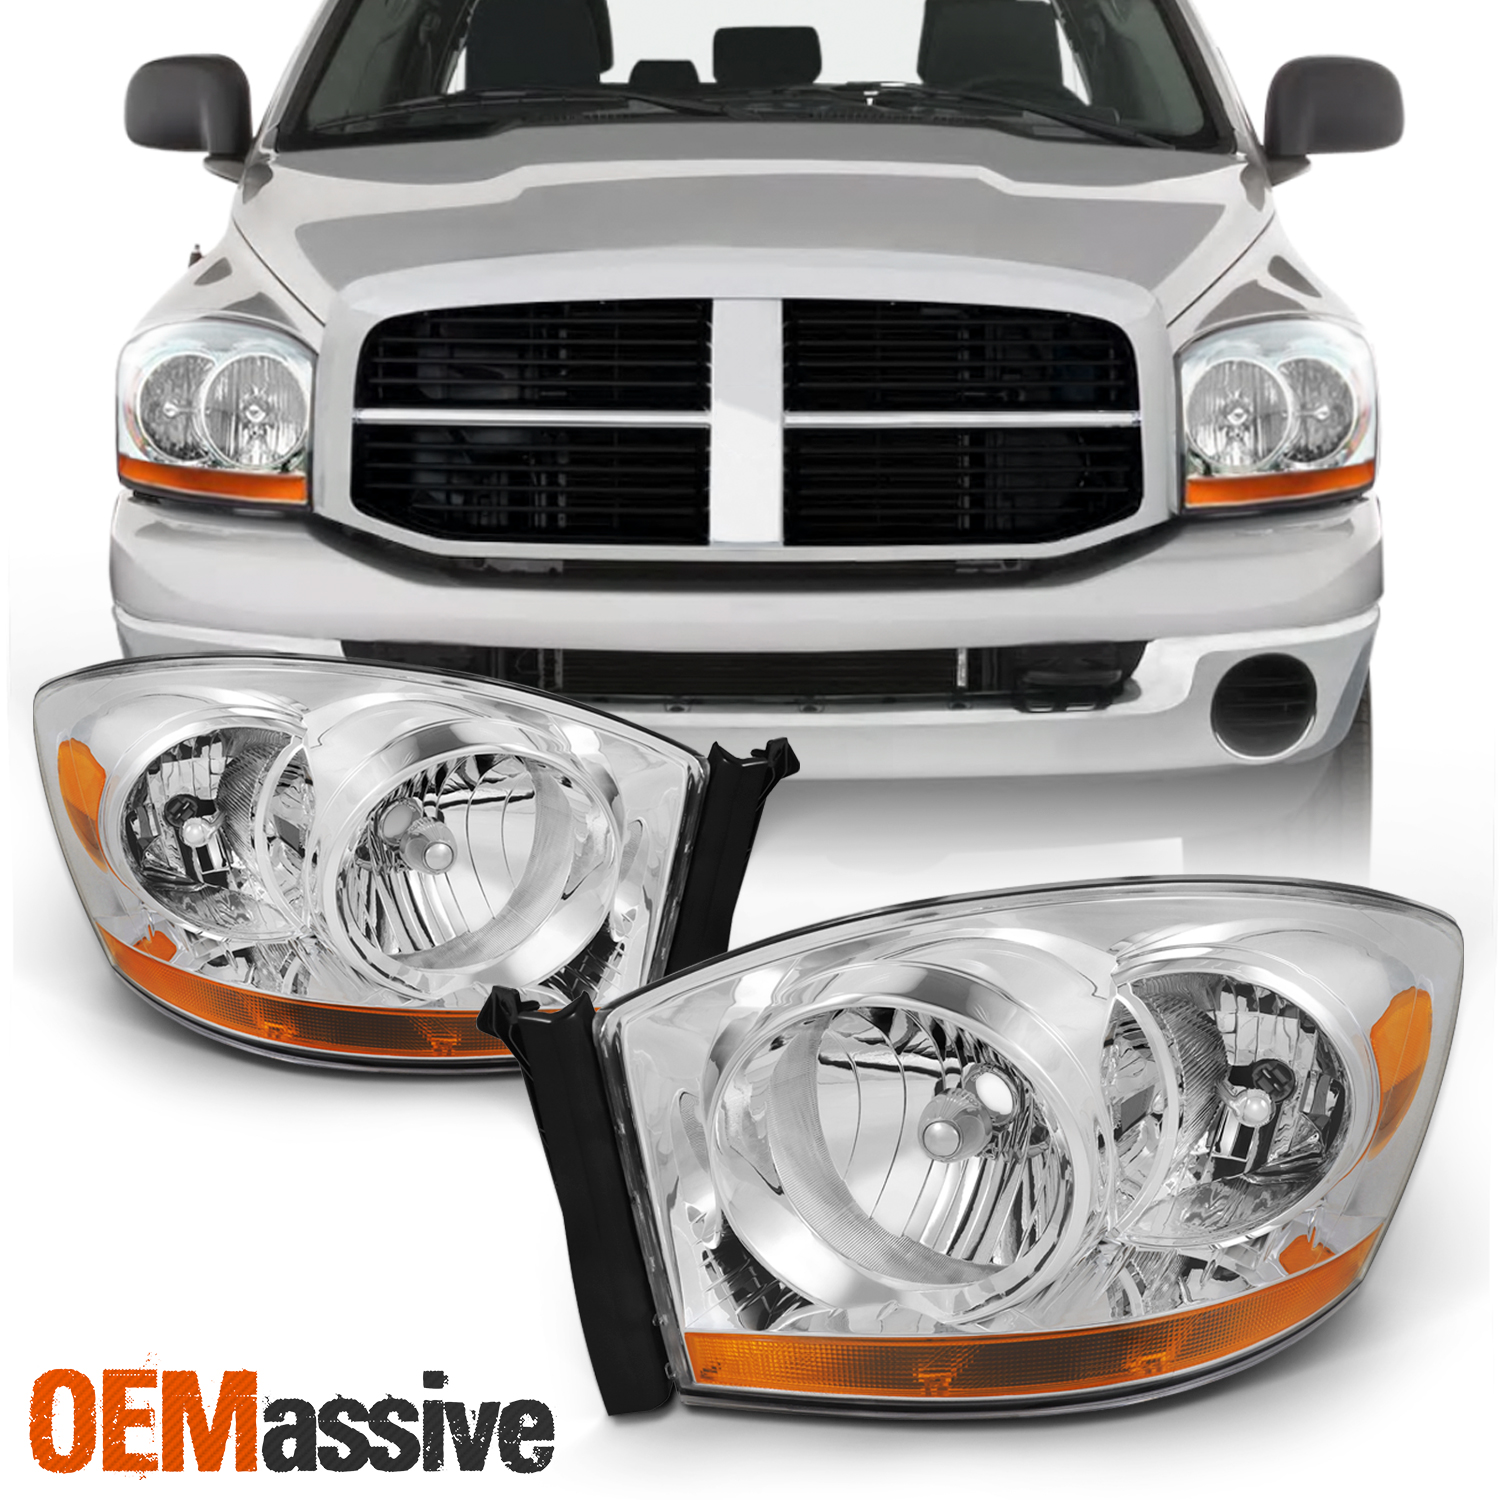 Details About Fit 2006 2007 2008 Dodge Ram 1500 2500 3500 Replacement Headlights Left Right